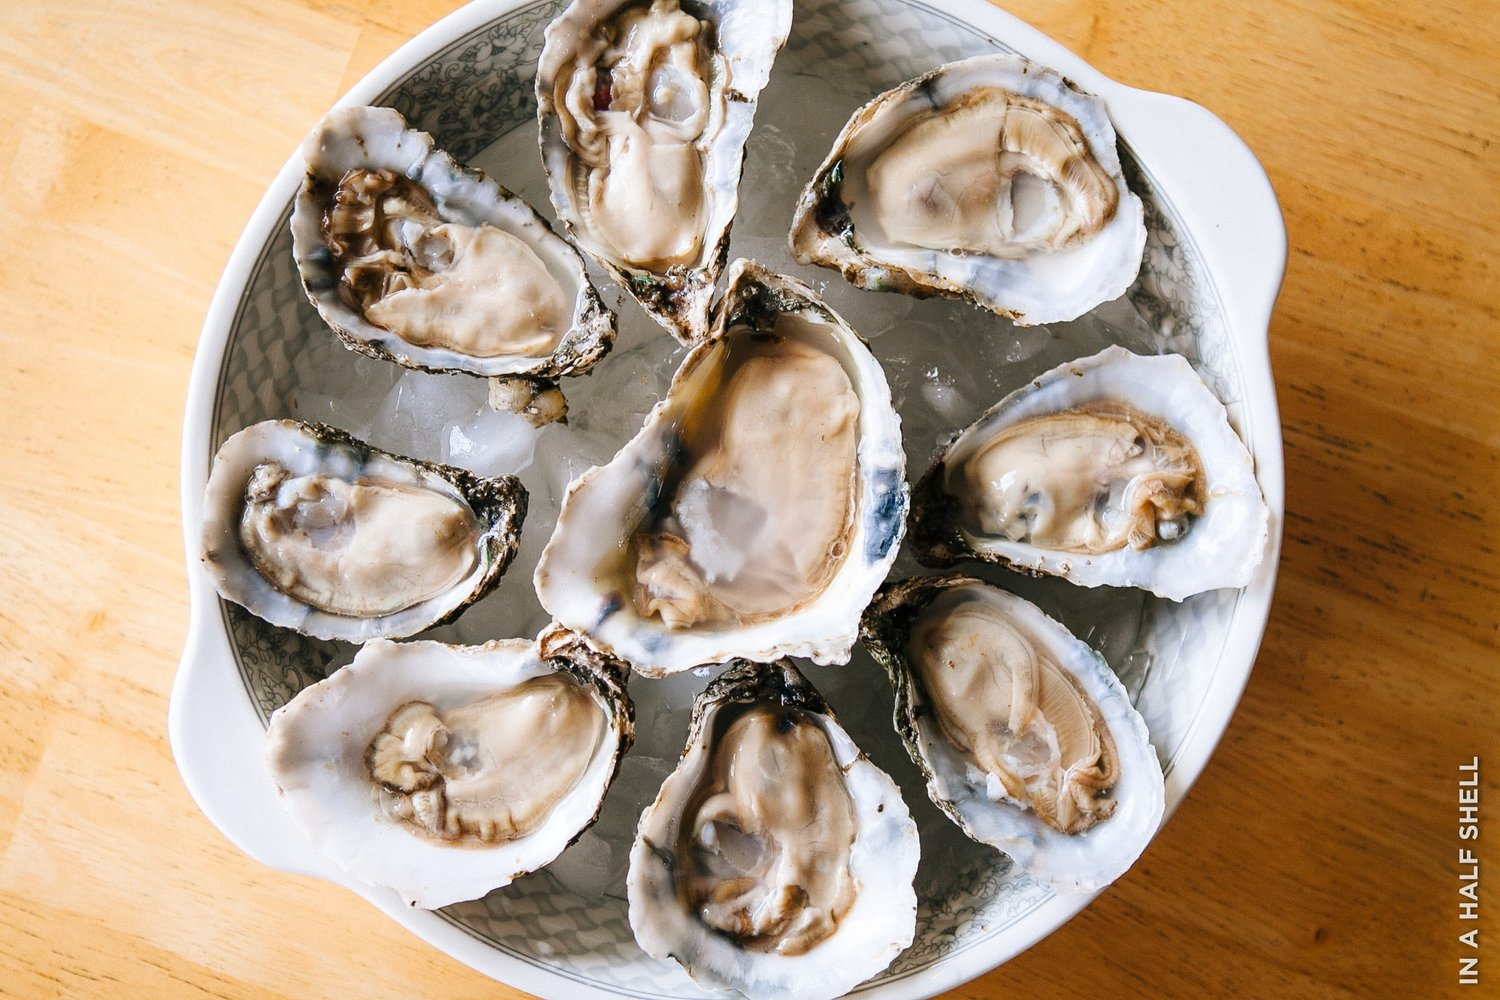 How To Enjoy Oysters At Home (2020 Update) — In A Half Shell